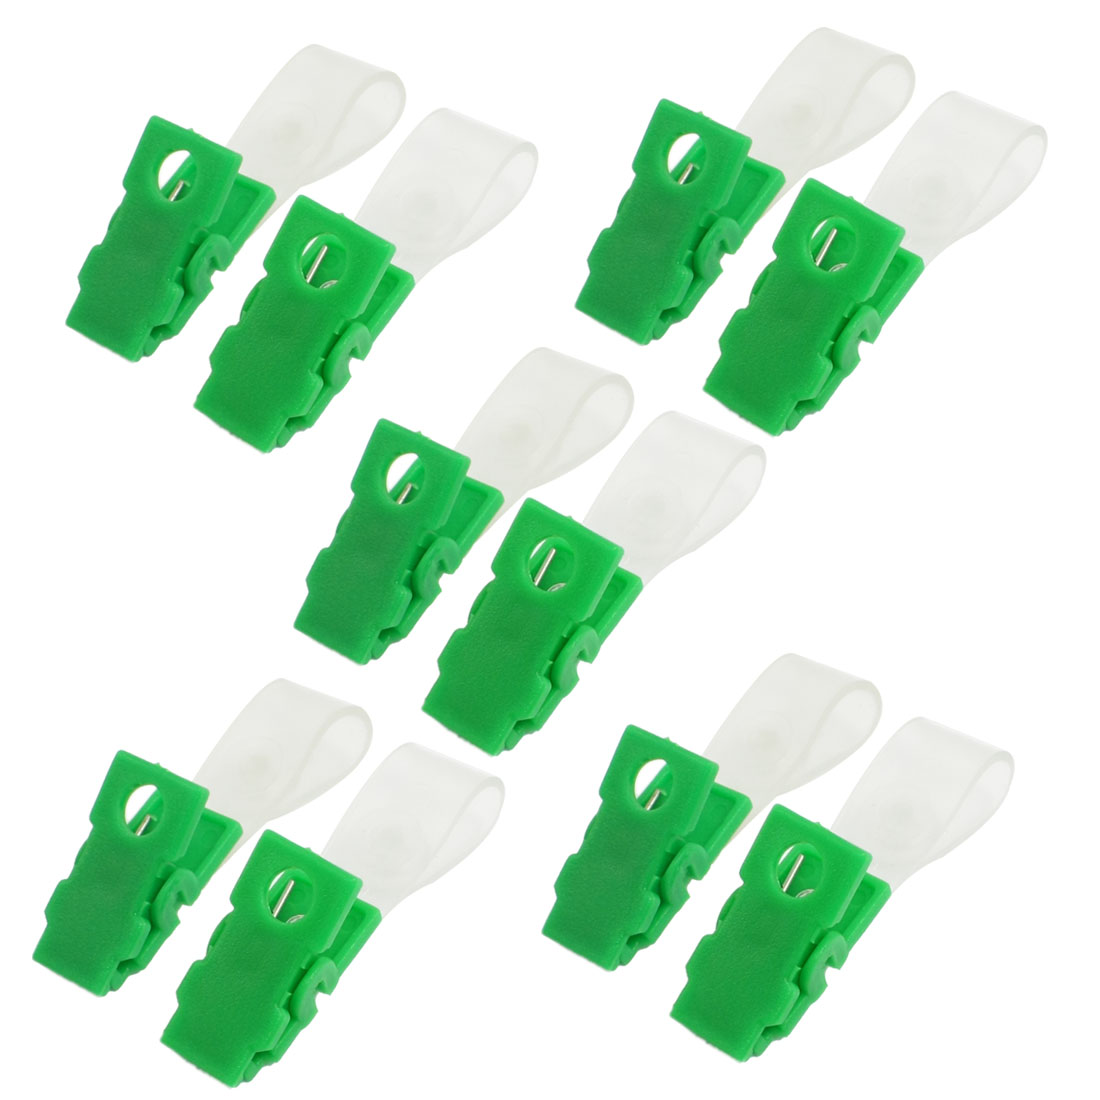 10 Pcs Green Clear Plastic ID Card Holder Name Badge Clips Clamps